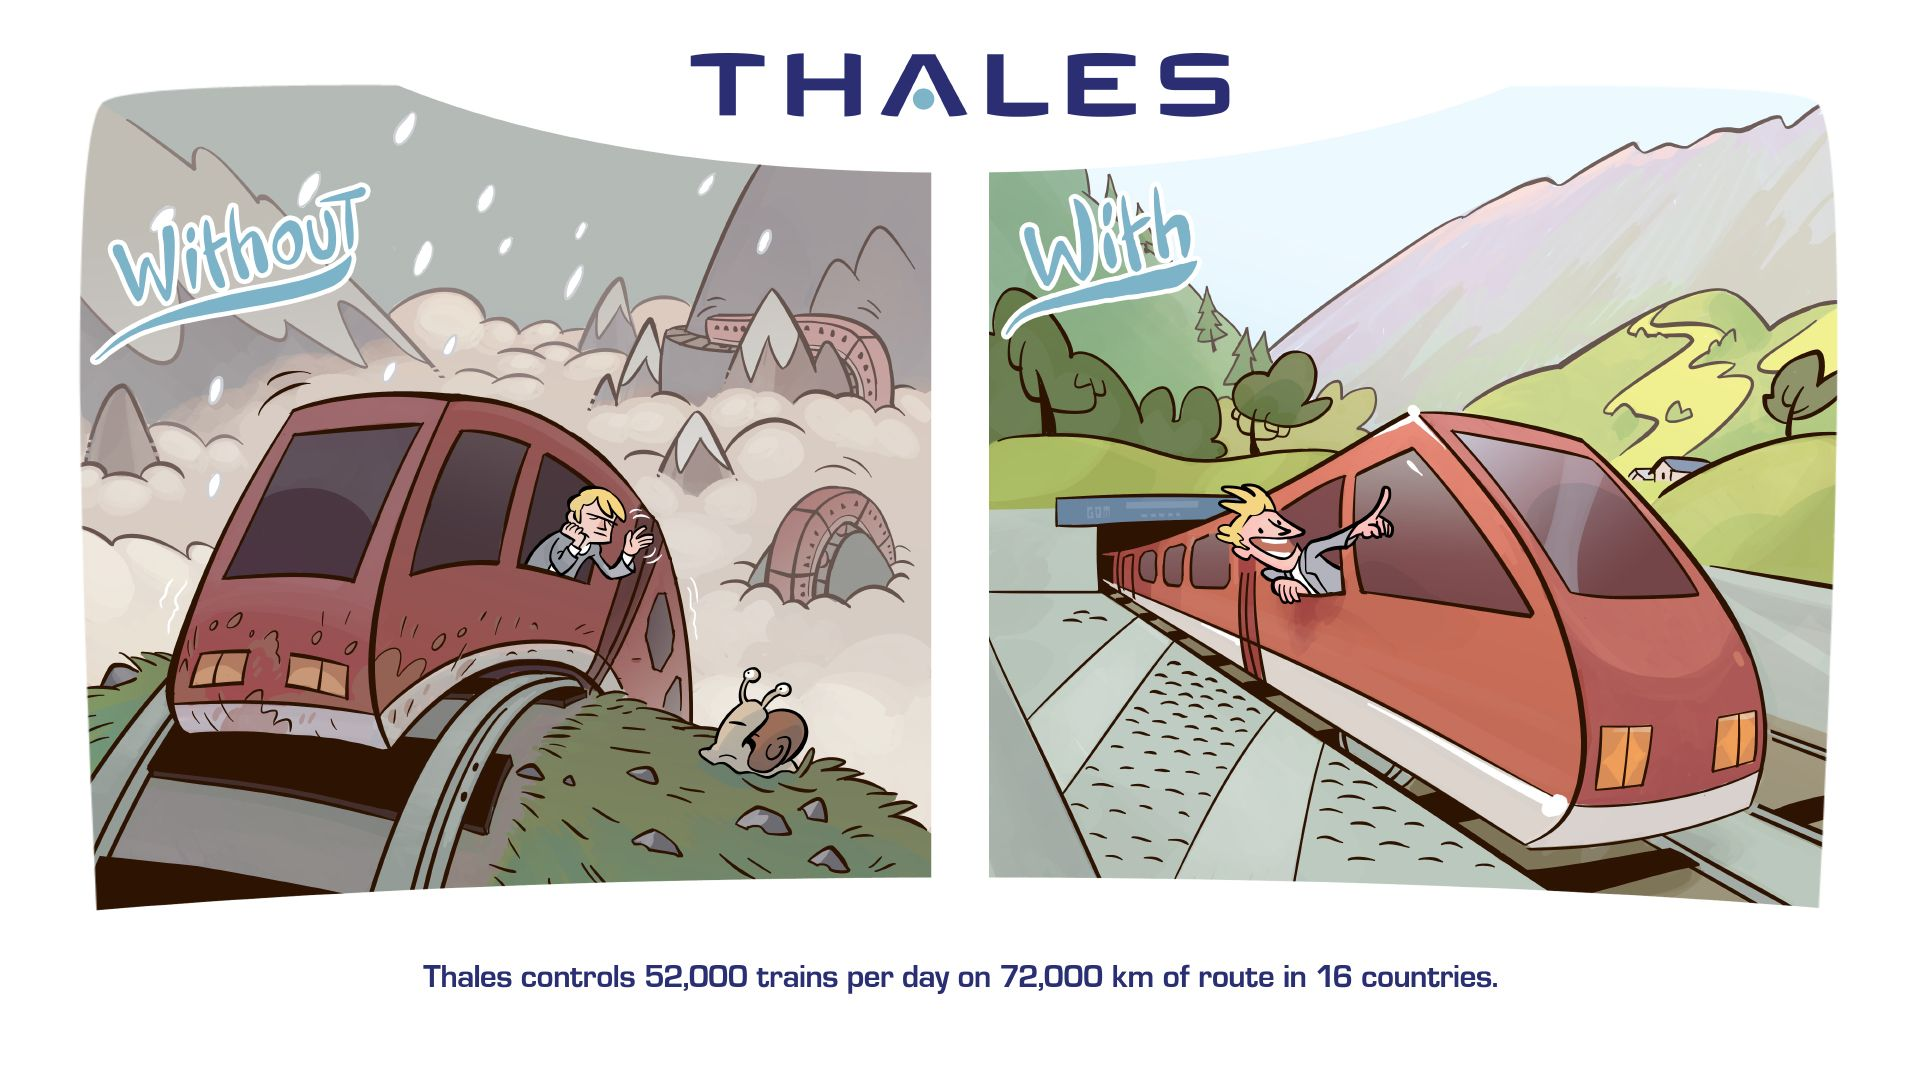 Did you know Thales controls 52,000 trains per day on 72,000 km of route in 16 countries?